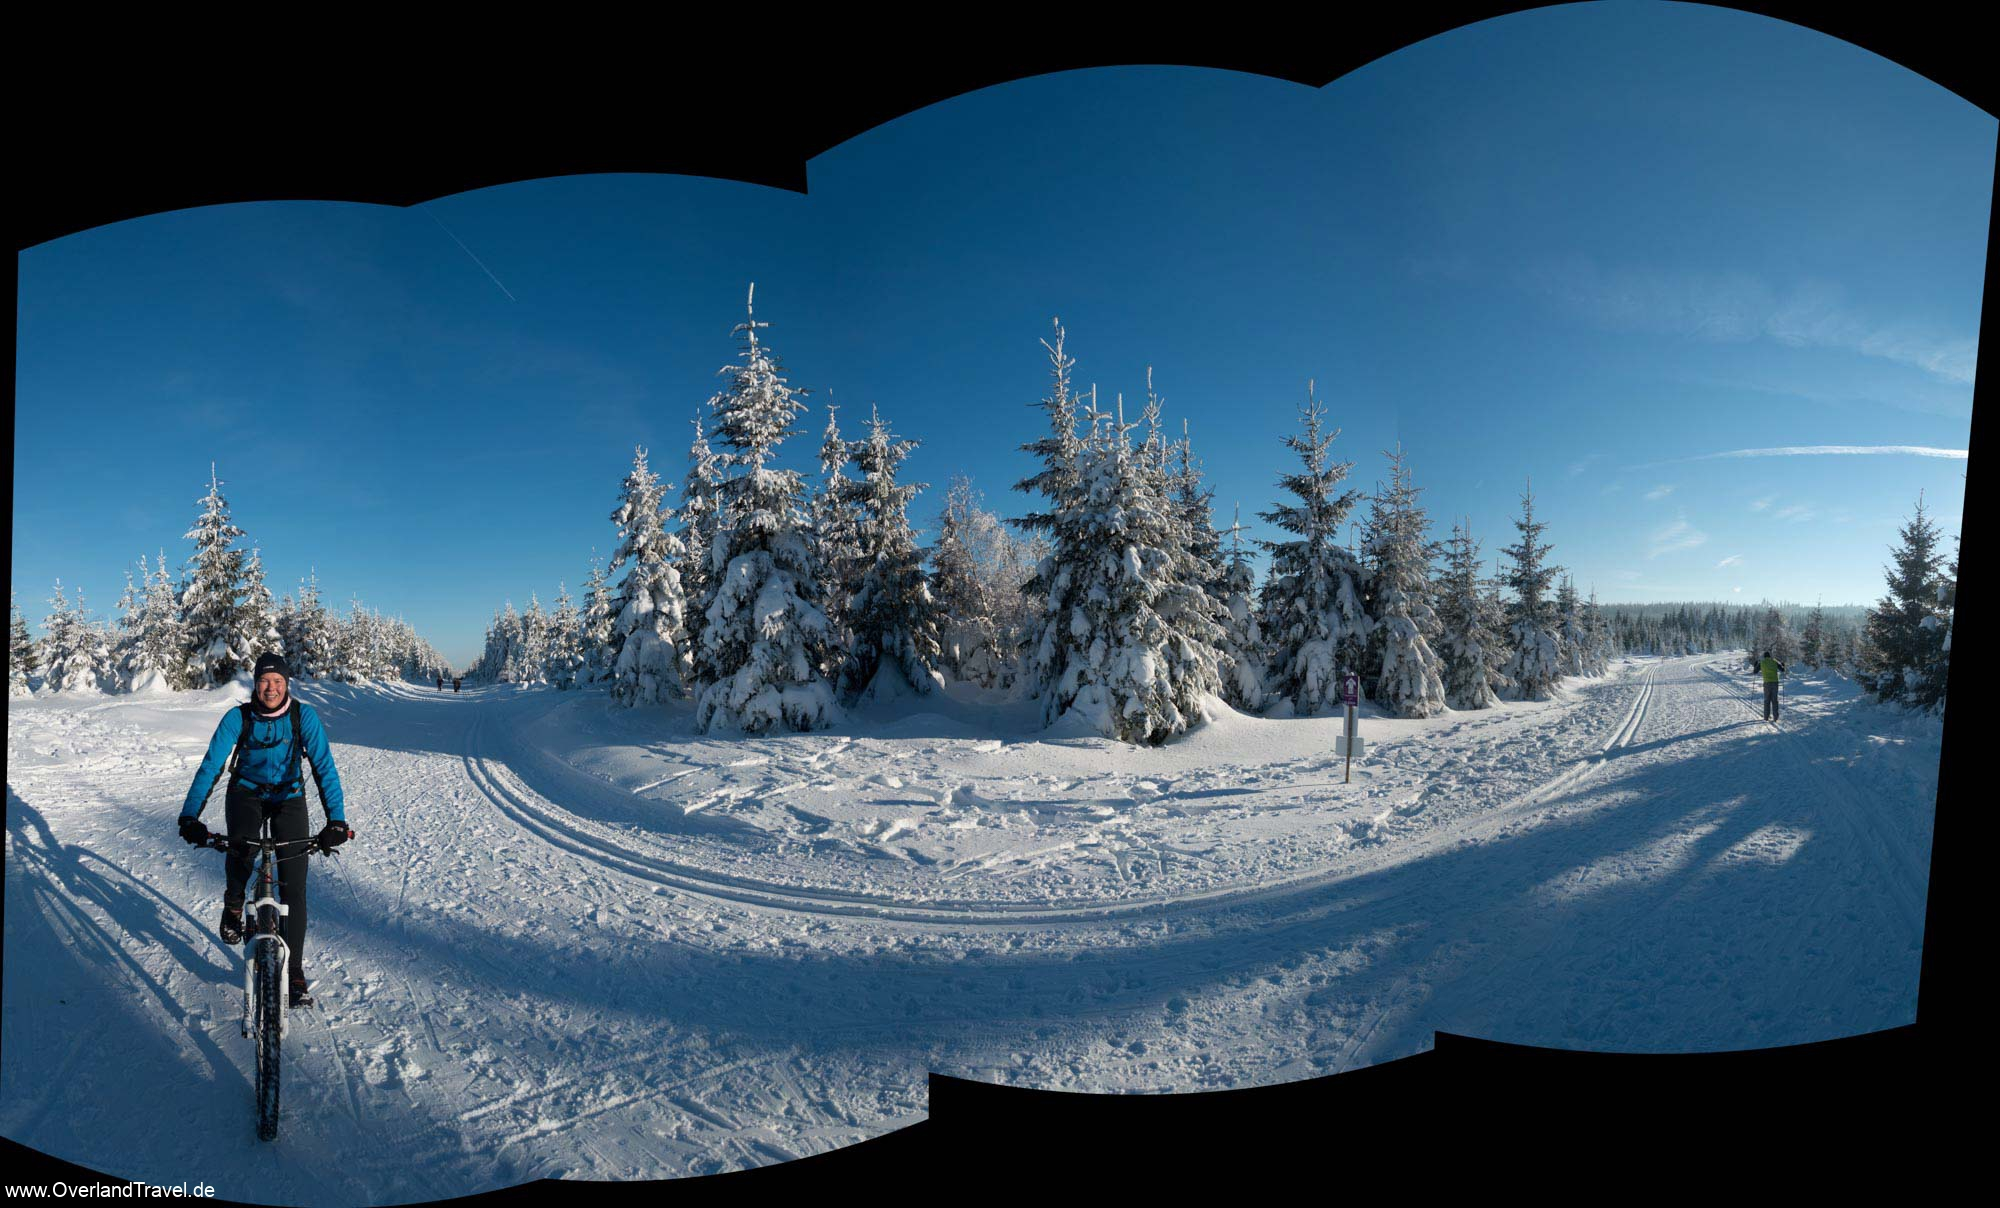 Panorama of Winter Snow mountain biking on a cross country ski track